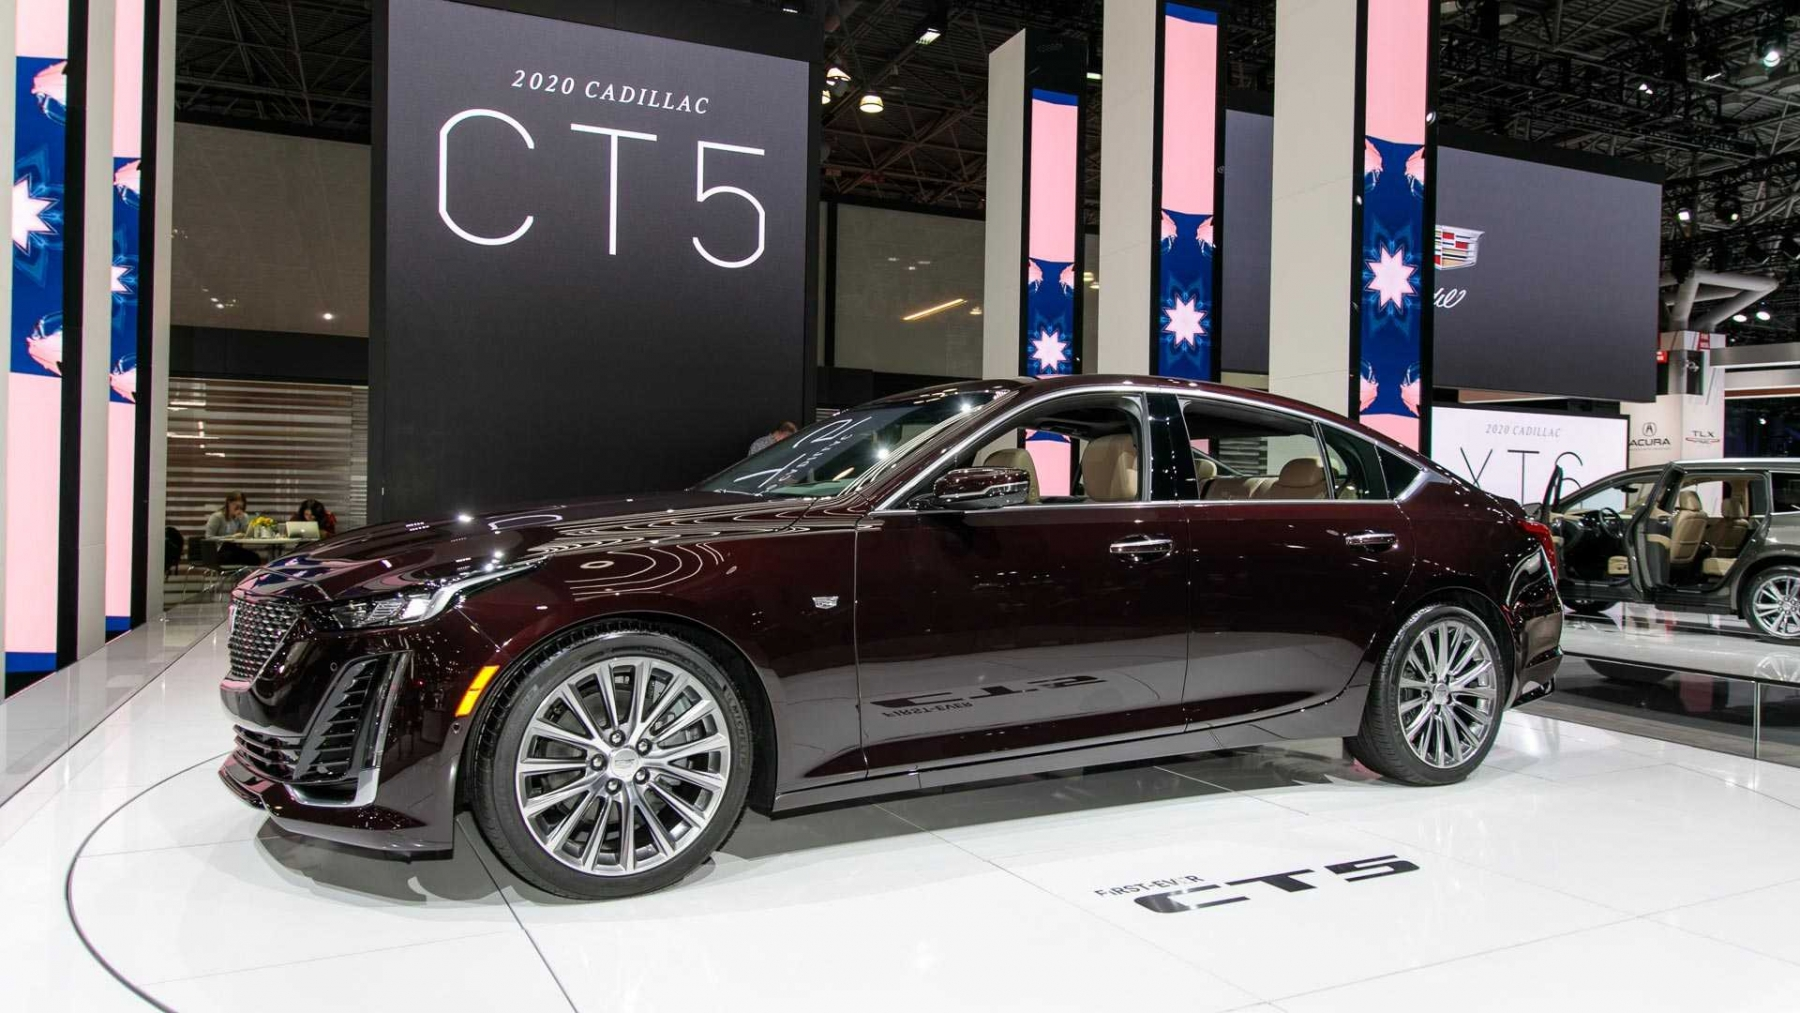 1_2020-cadillac-ct5-live-images